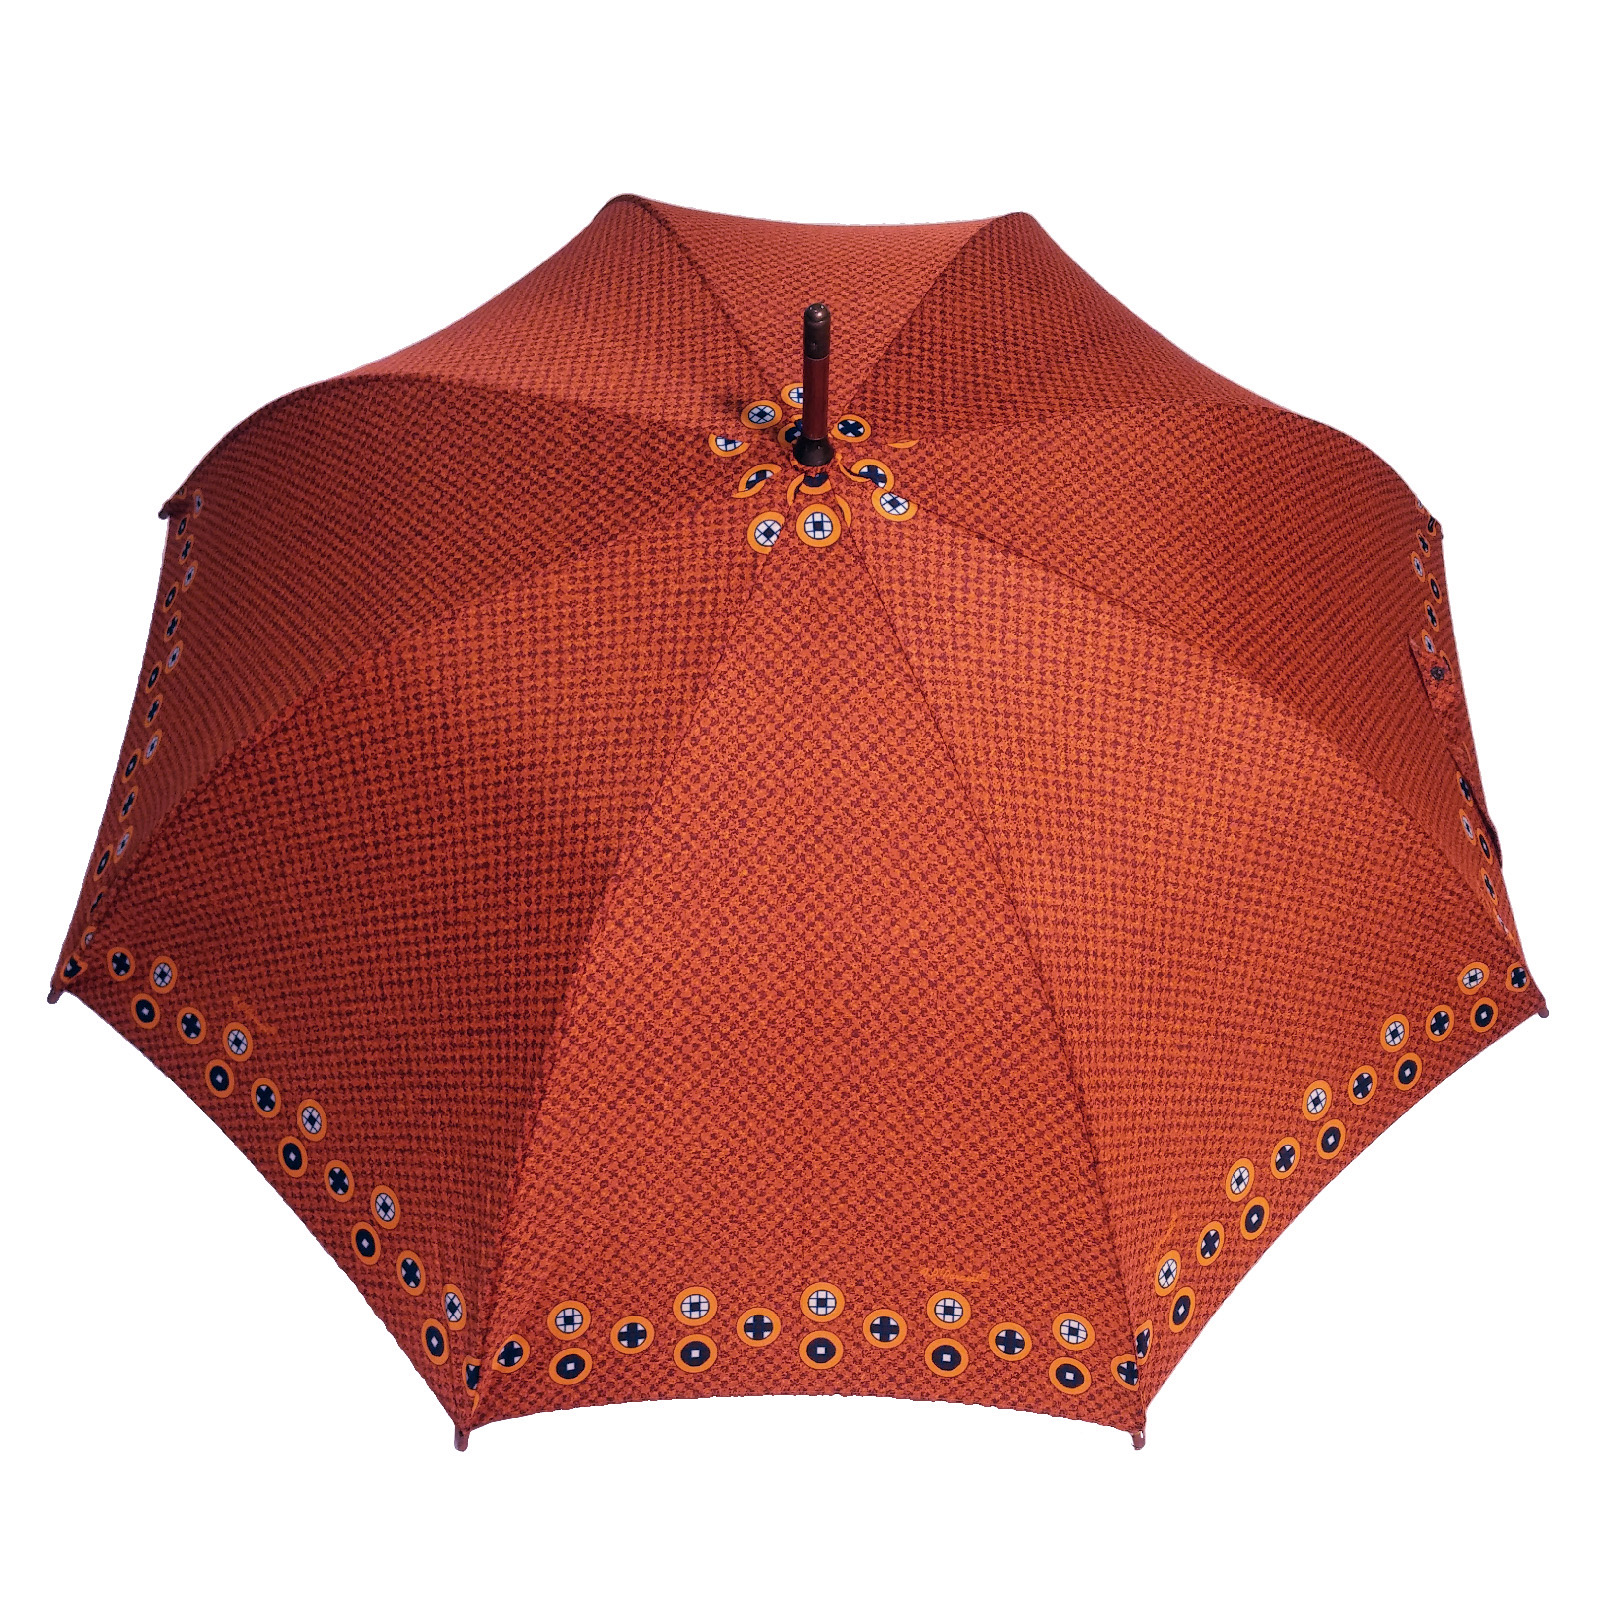 PA-00004-C16-parapluie-femme-long-orange-chine